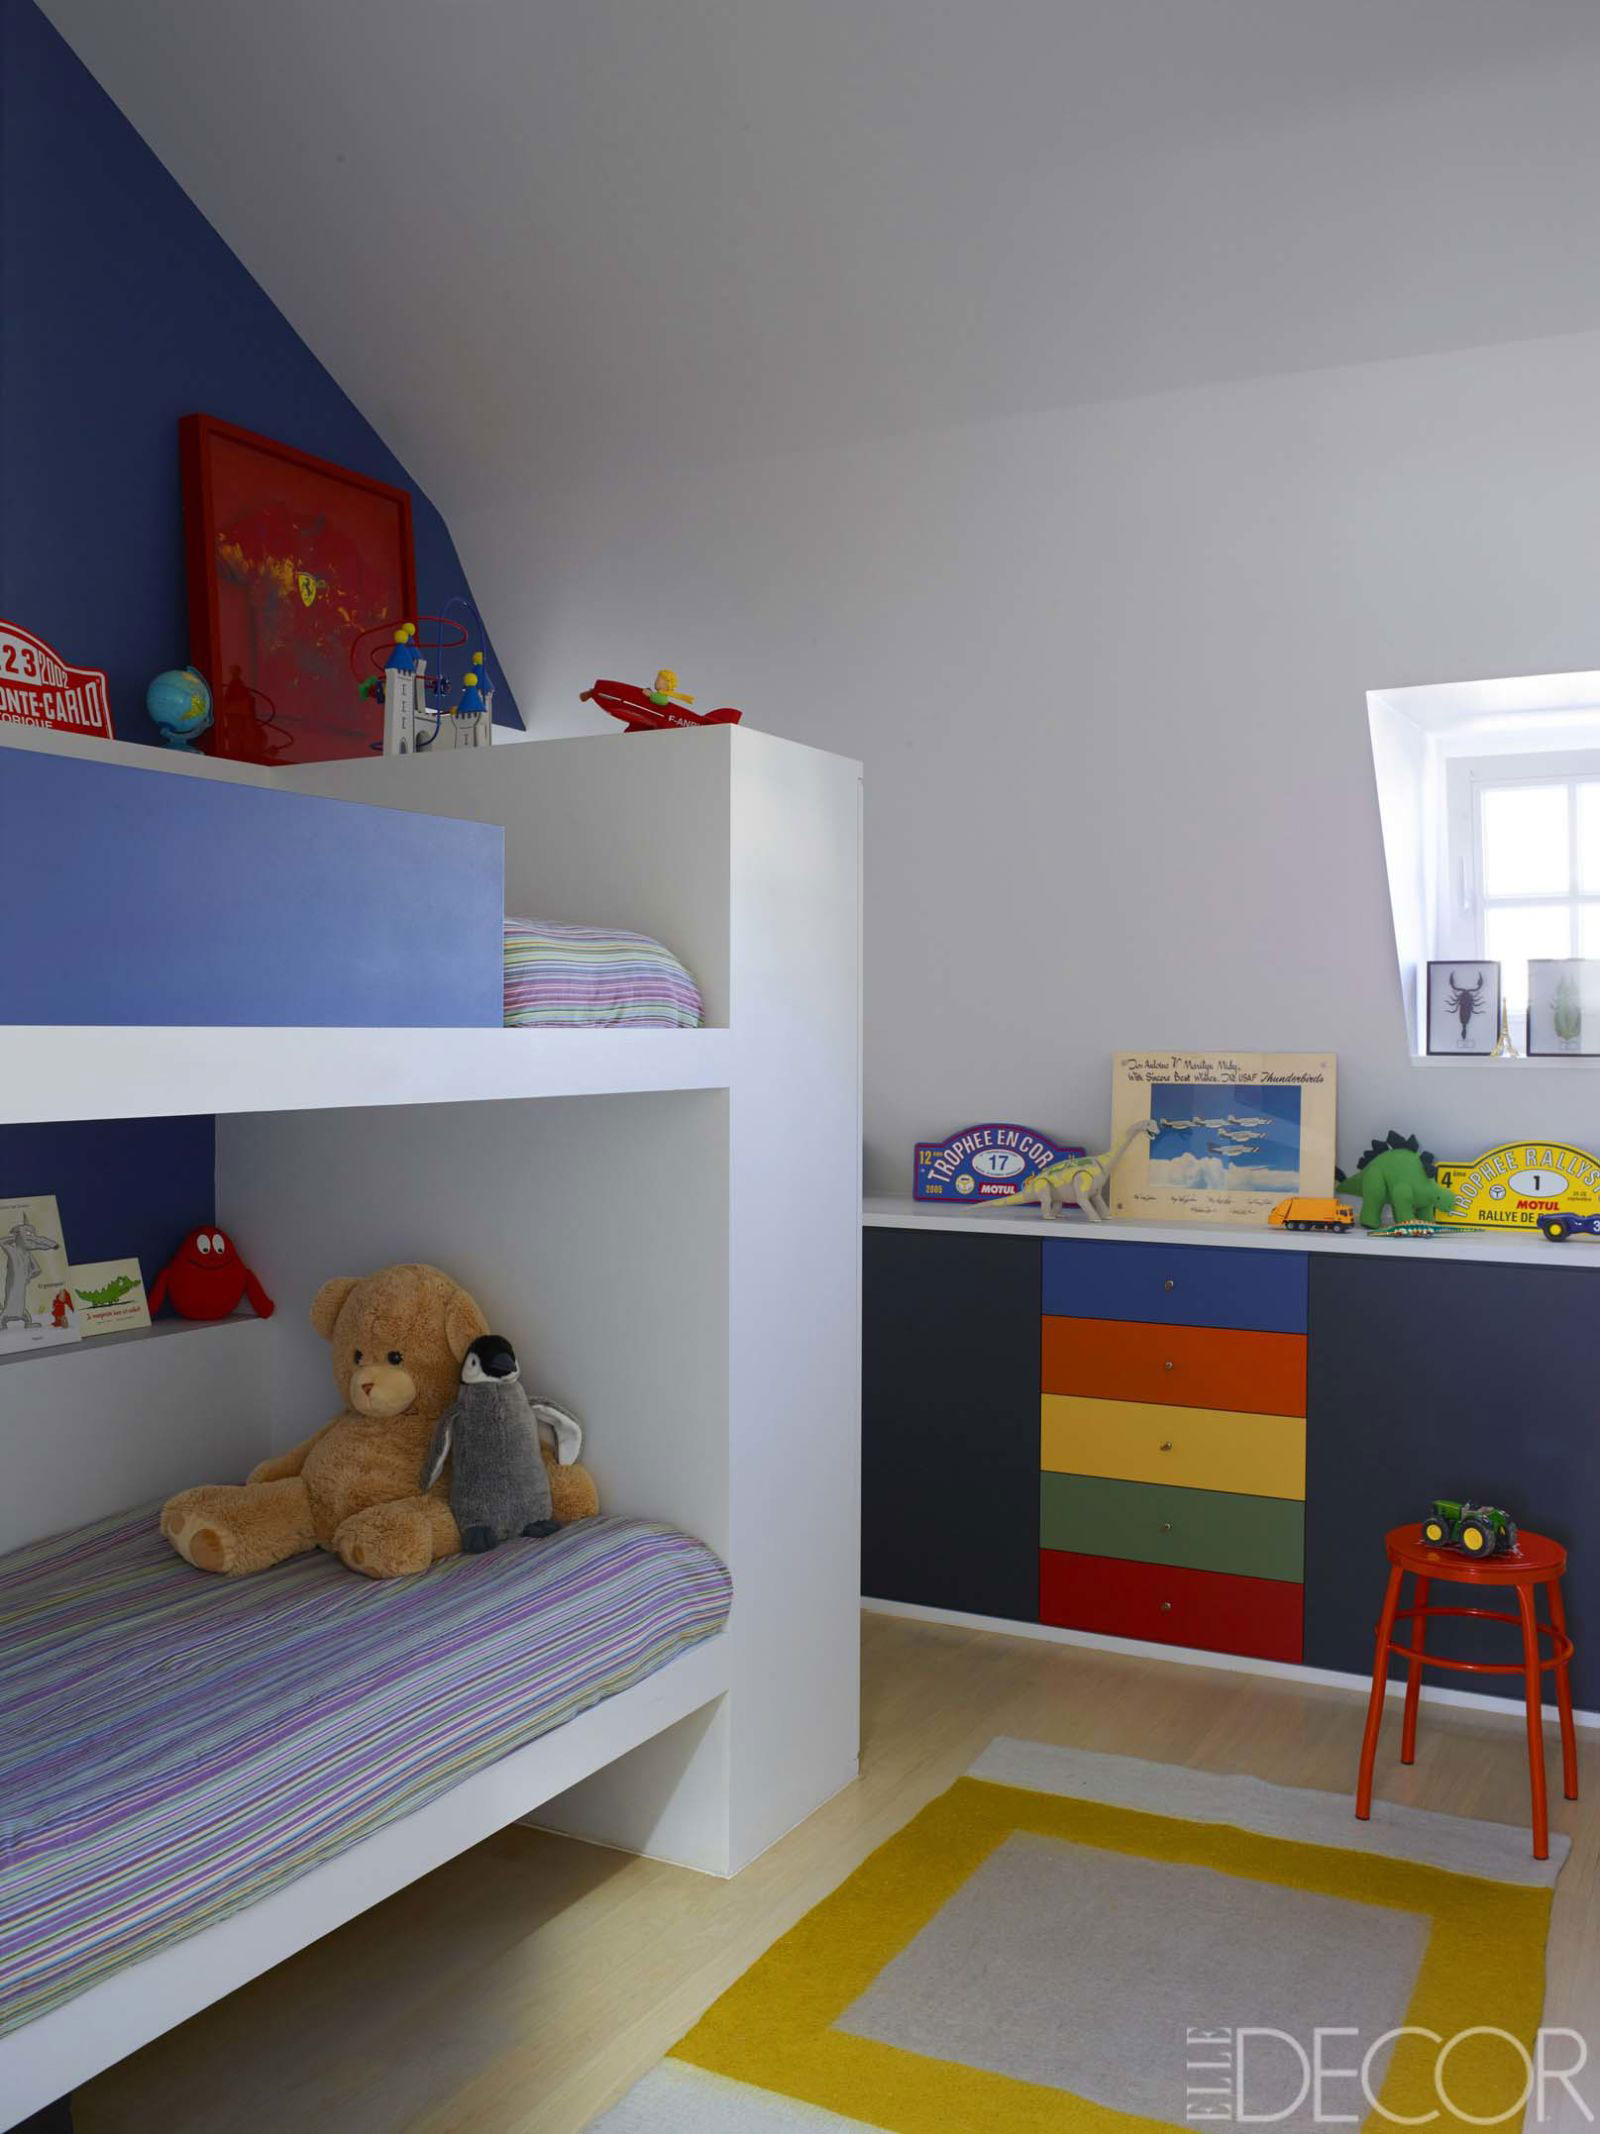 15 cool boys bedroom ideas decorating a little boy room 25 best ideas about boy sports bedroom on pinterest